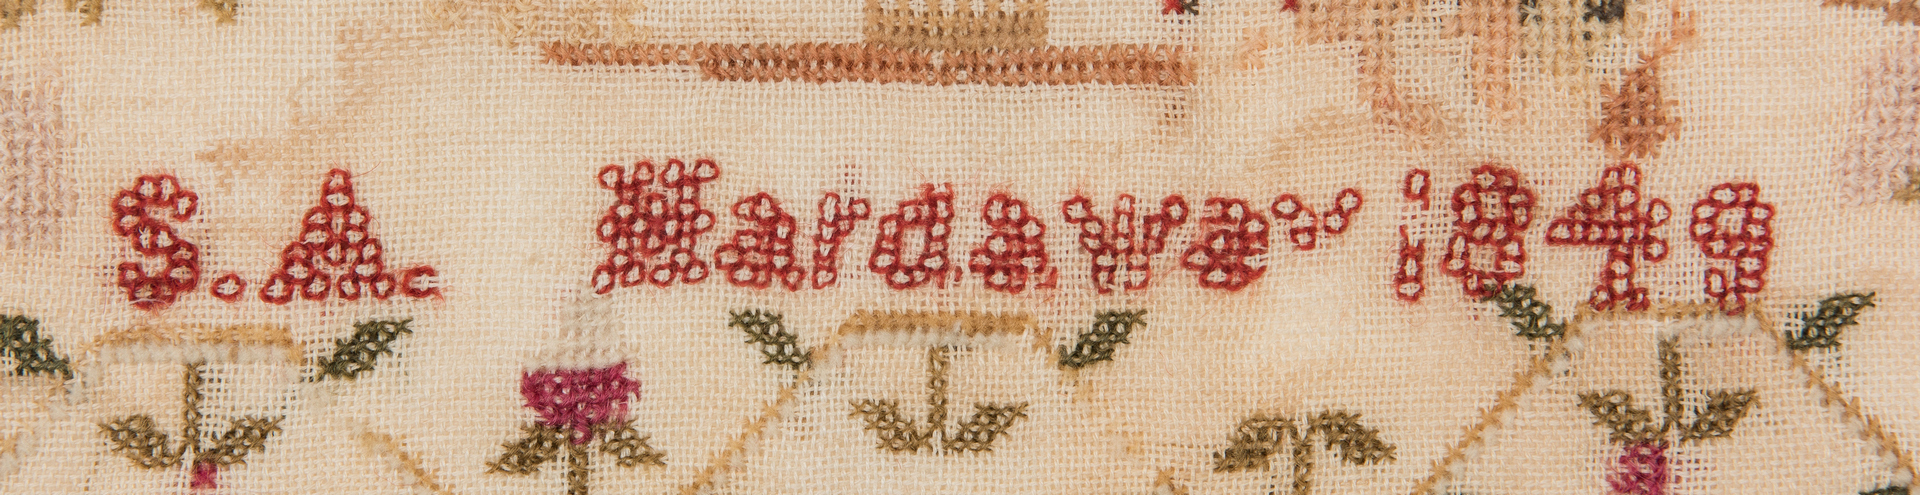 Lot 896: 2 19th Cent. Textiles, incl. Sampler, Silk Embroidery